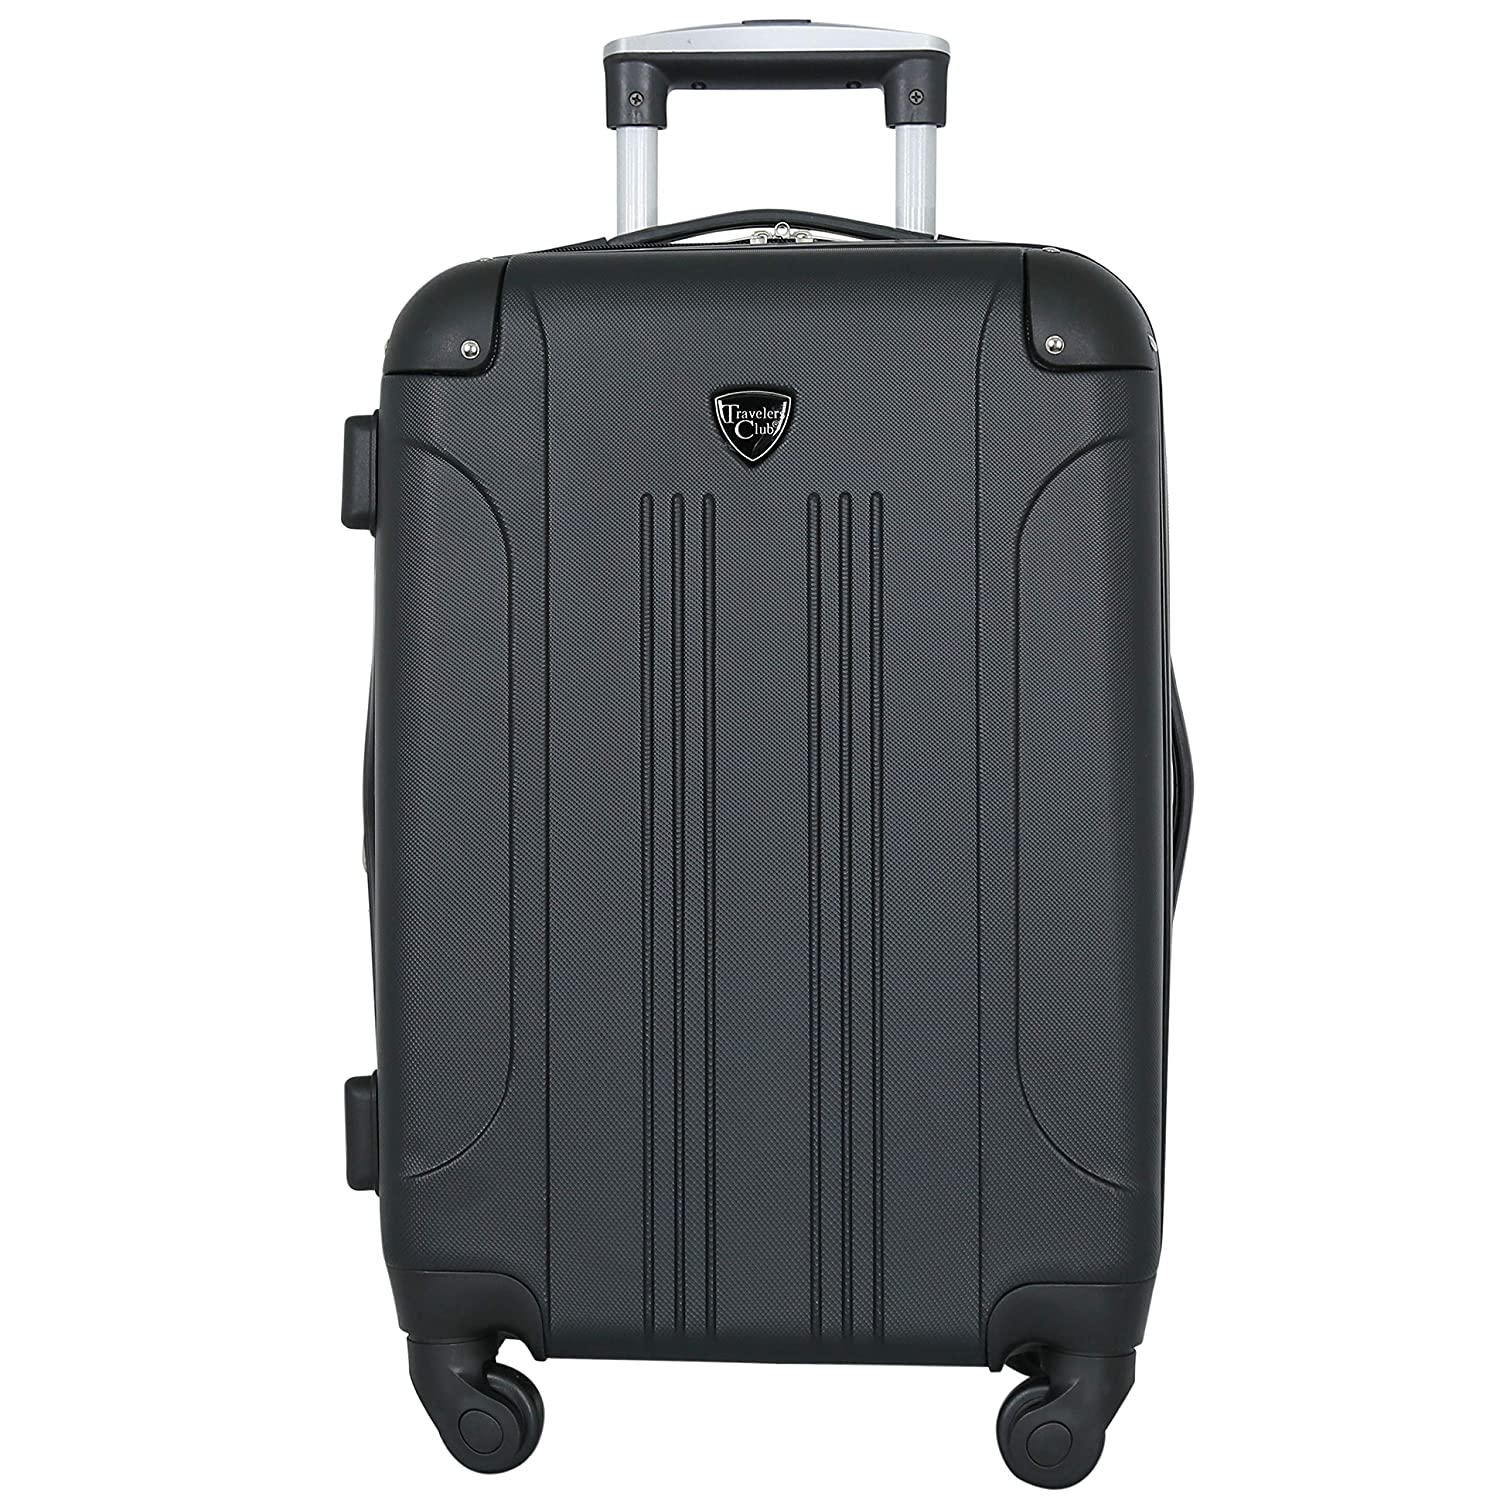 7a34e07f01fc Travelers Club Luggage Chicago 20 Inch Expandable Carry-On Spinner ...